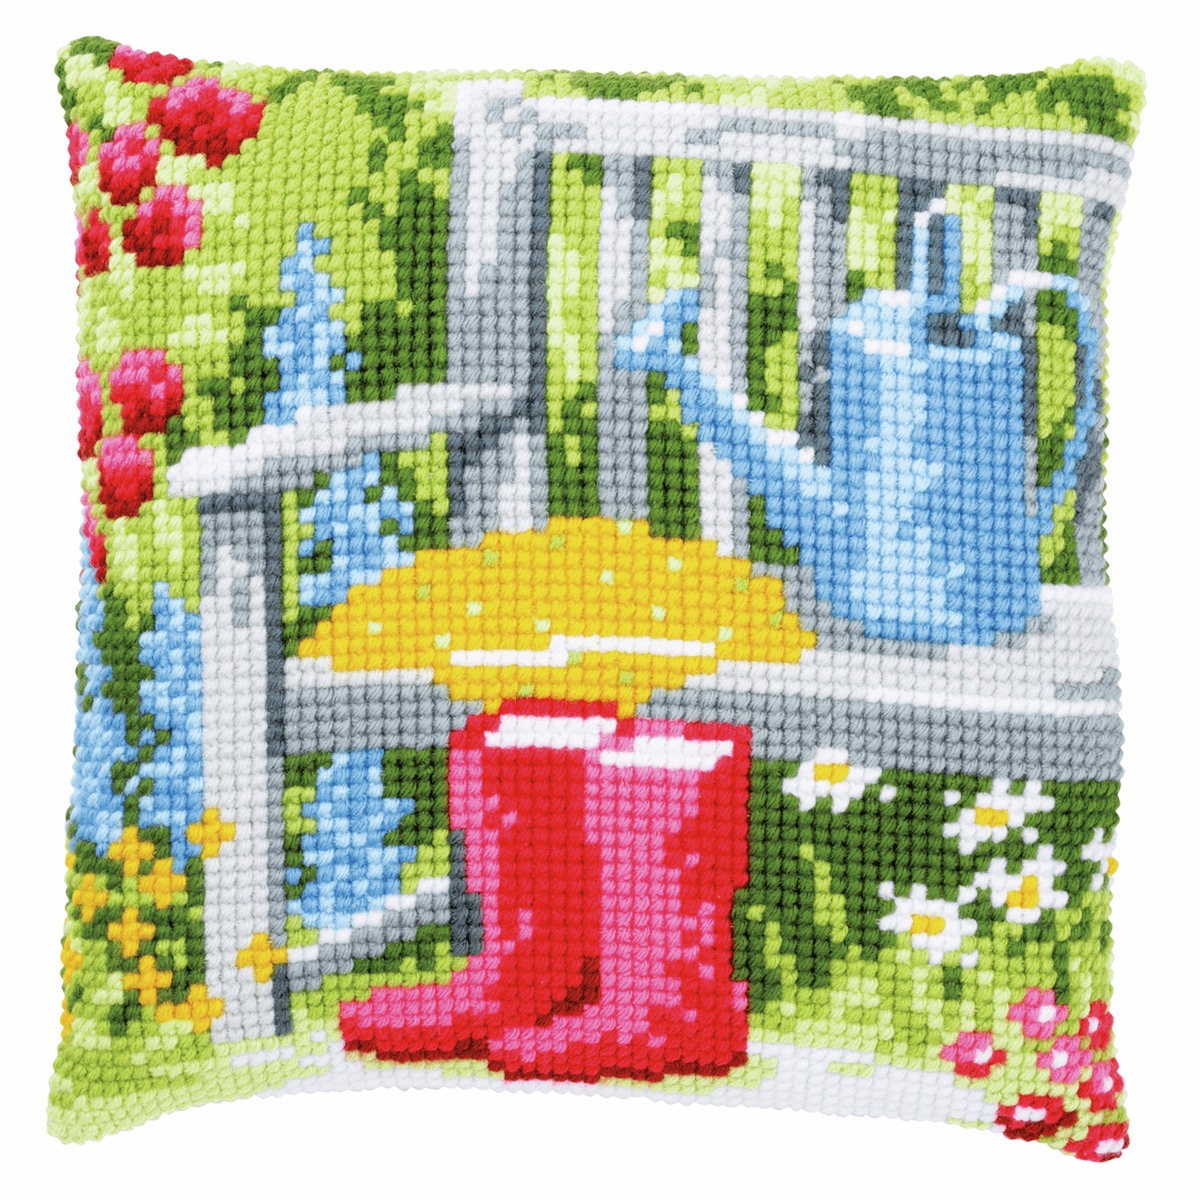 Picture of Cross Stitch Kit: Cushion: My Garden